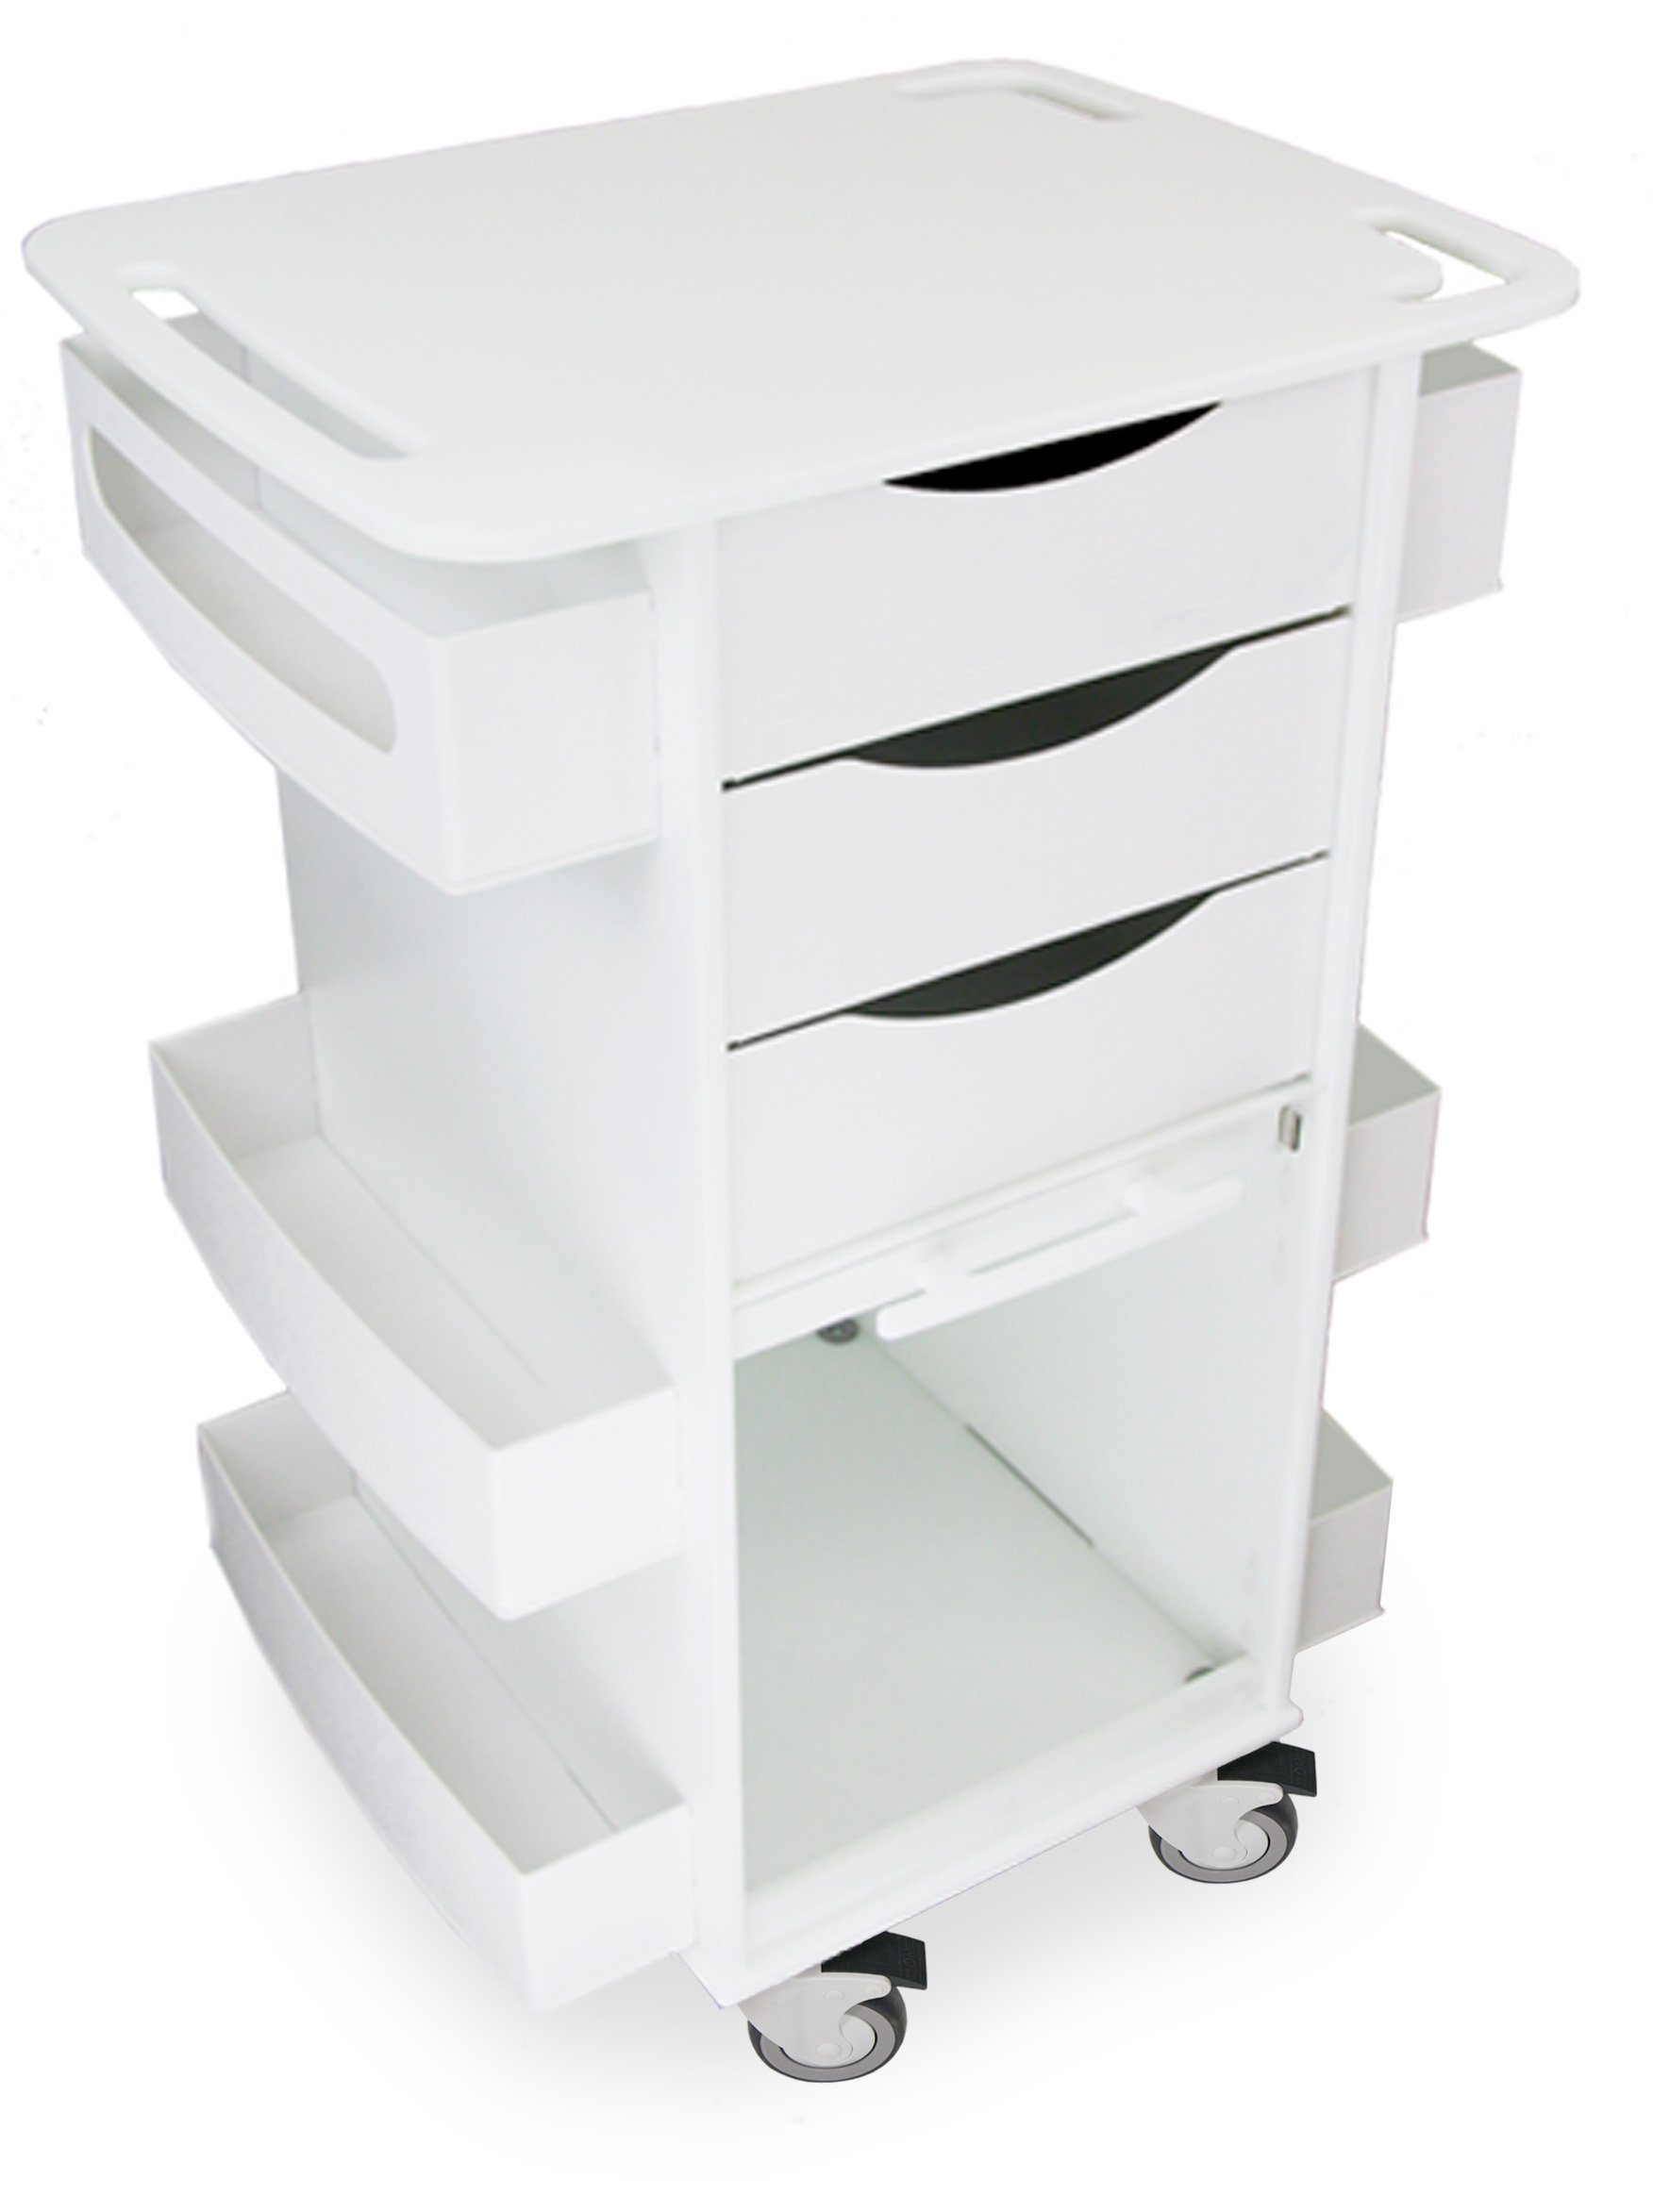 TrippNT 51029 Polyethylene Core DX with 5'' Casters and Clear PETG Door, 23'' Width x 37'' Height x 19'' Depth, White